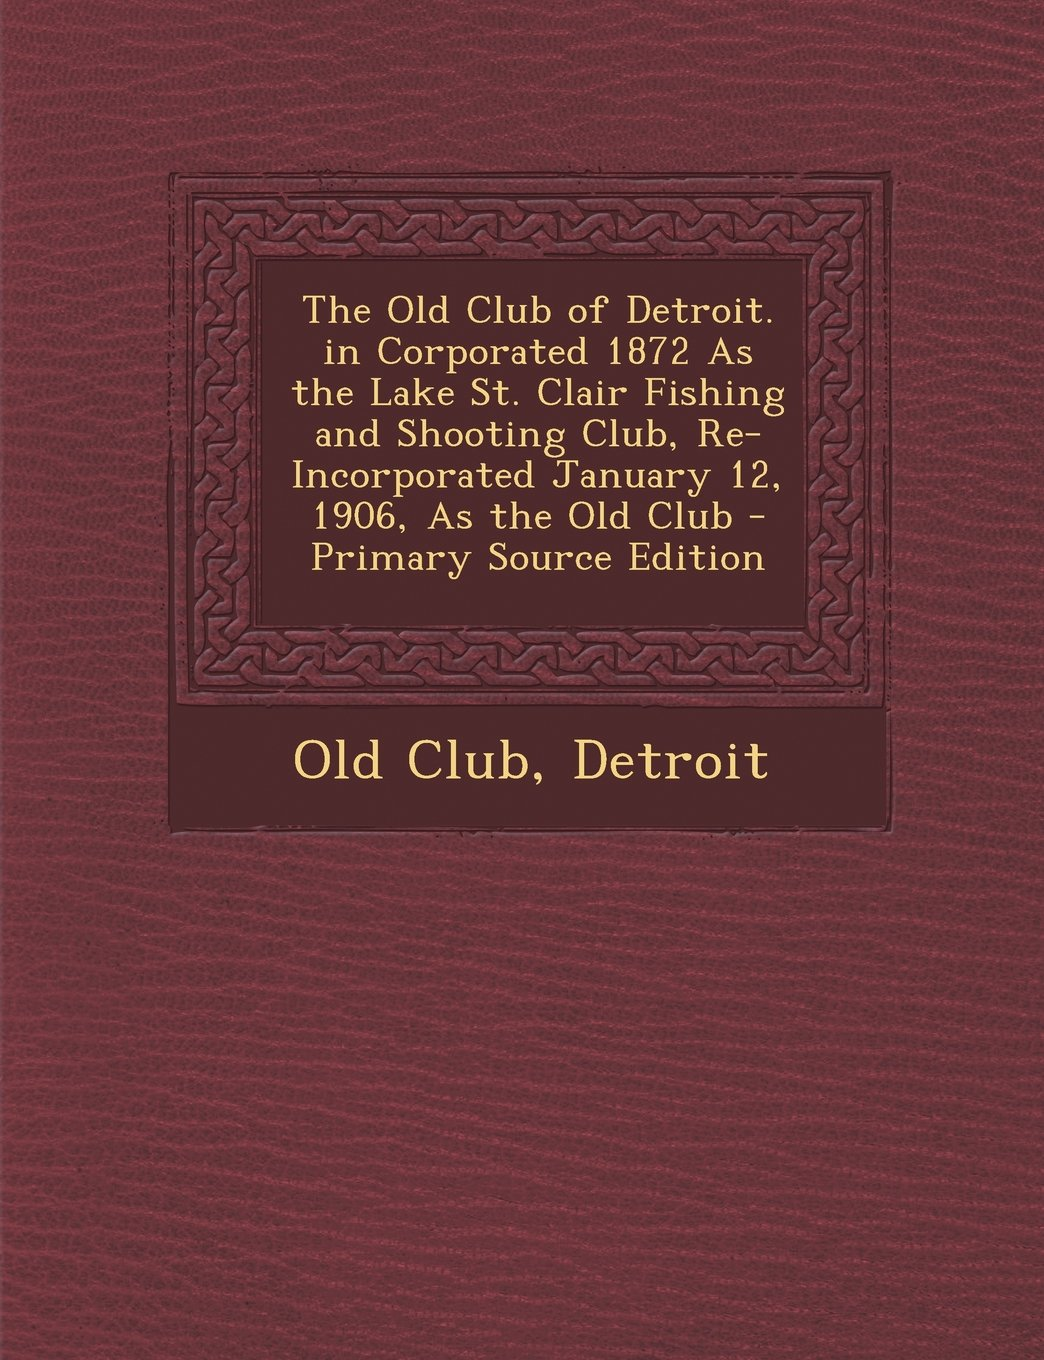 The Old Club of Detroit. in Corporated 1872 as the Lake St. Clair Fishing and Shooting Club, Re-Incorporated January 12, 1906, as the Old Club - Prima pdf